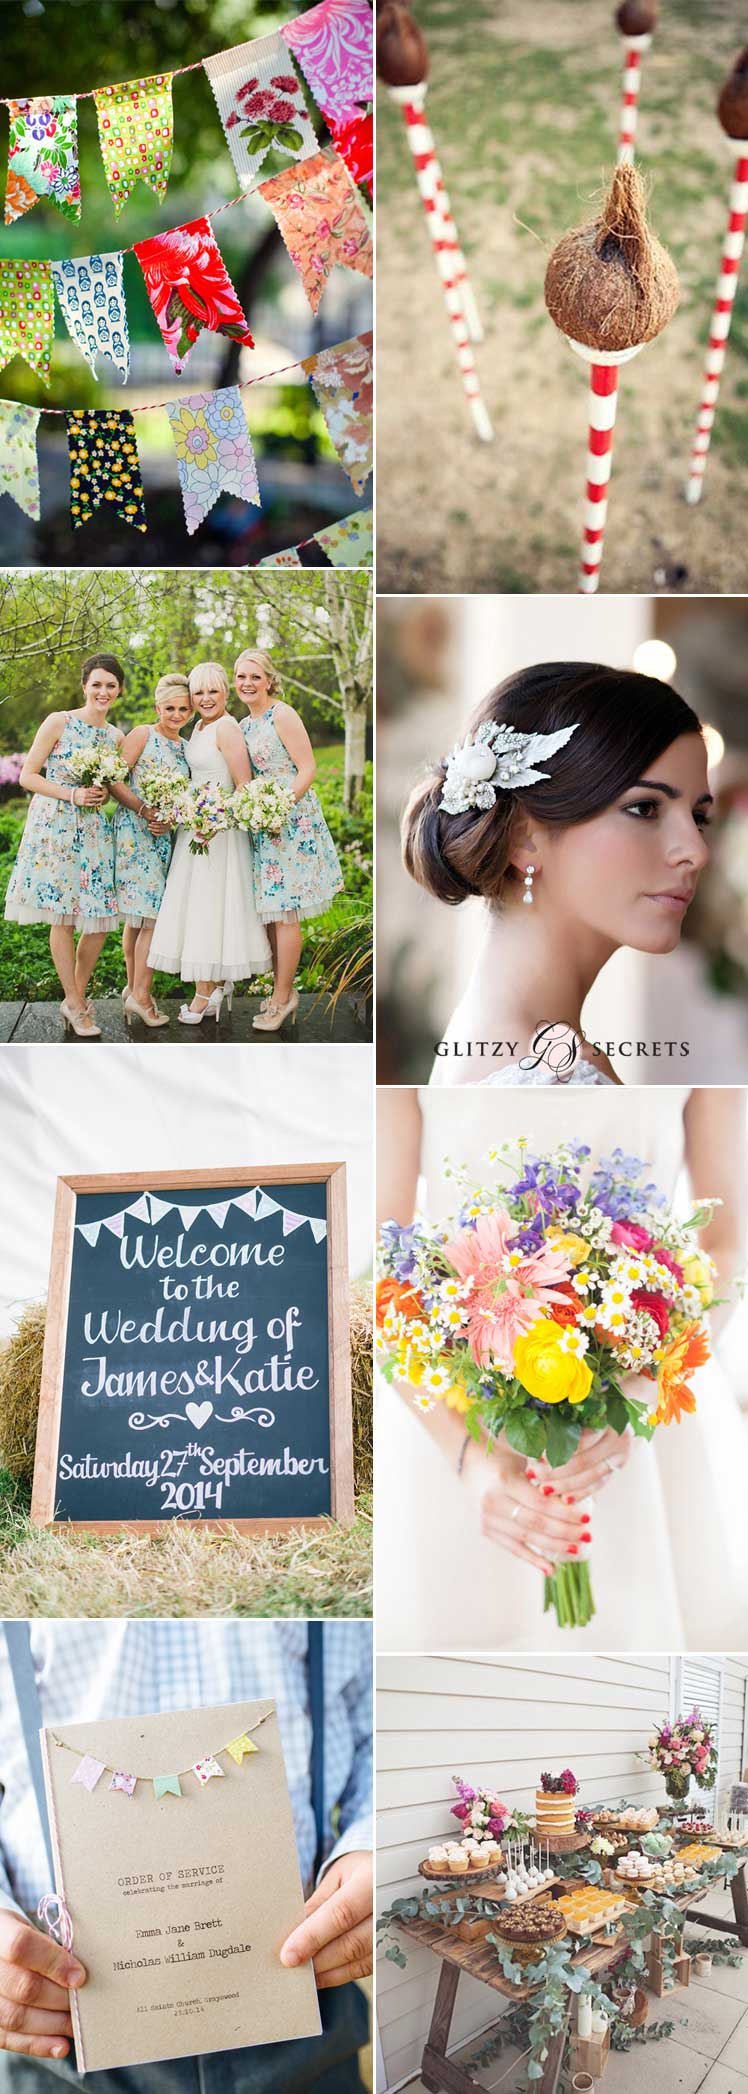 Village fete wedding ideas